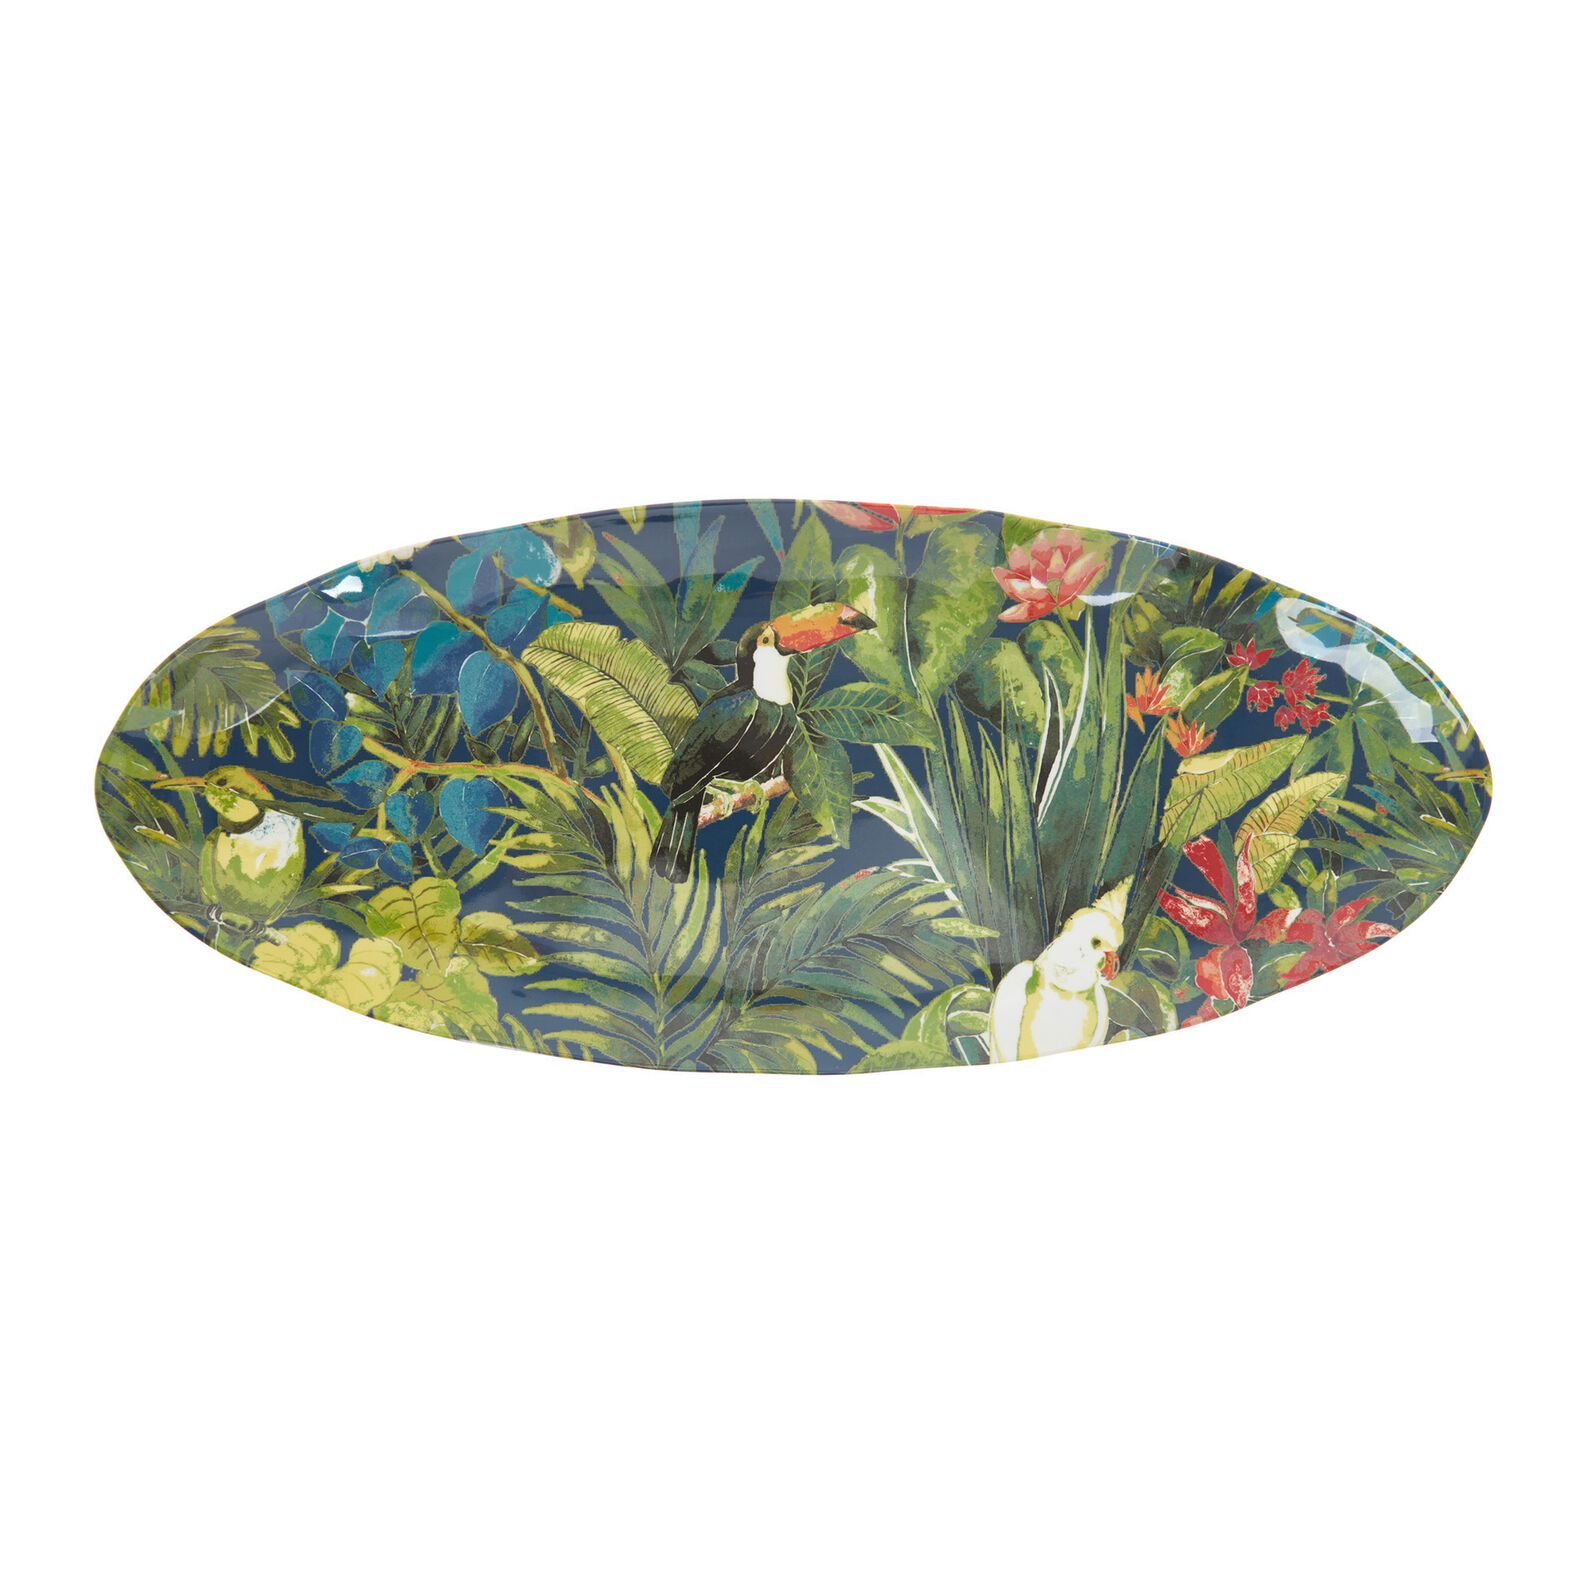 Melamine serving dish with tropical motif